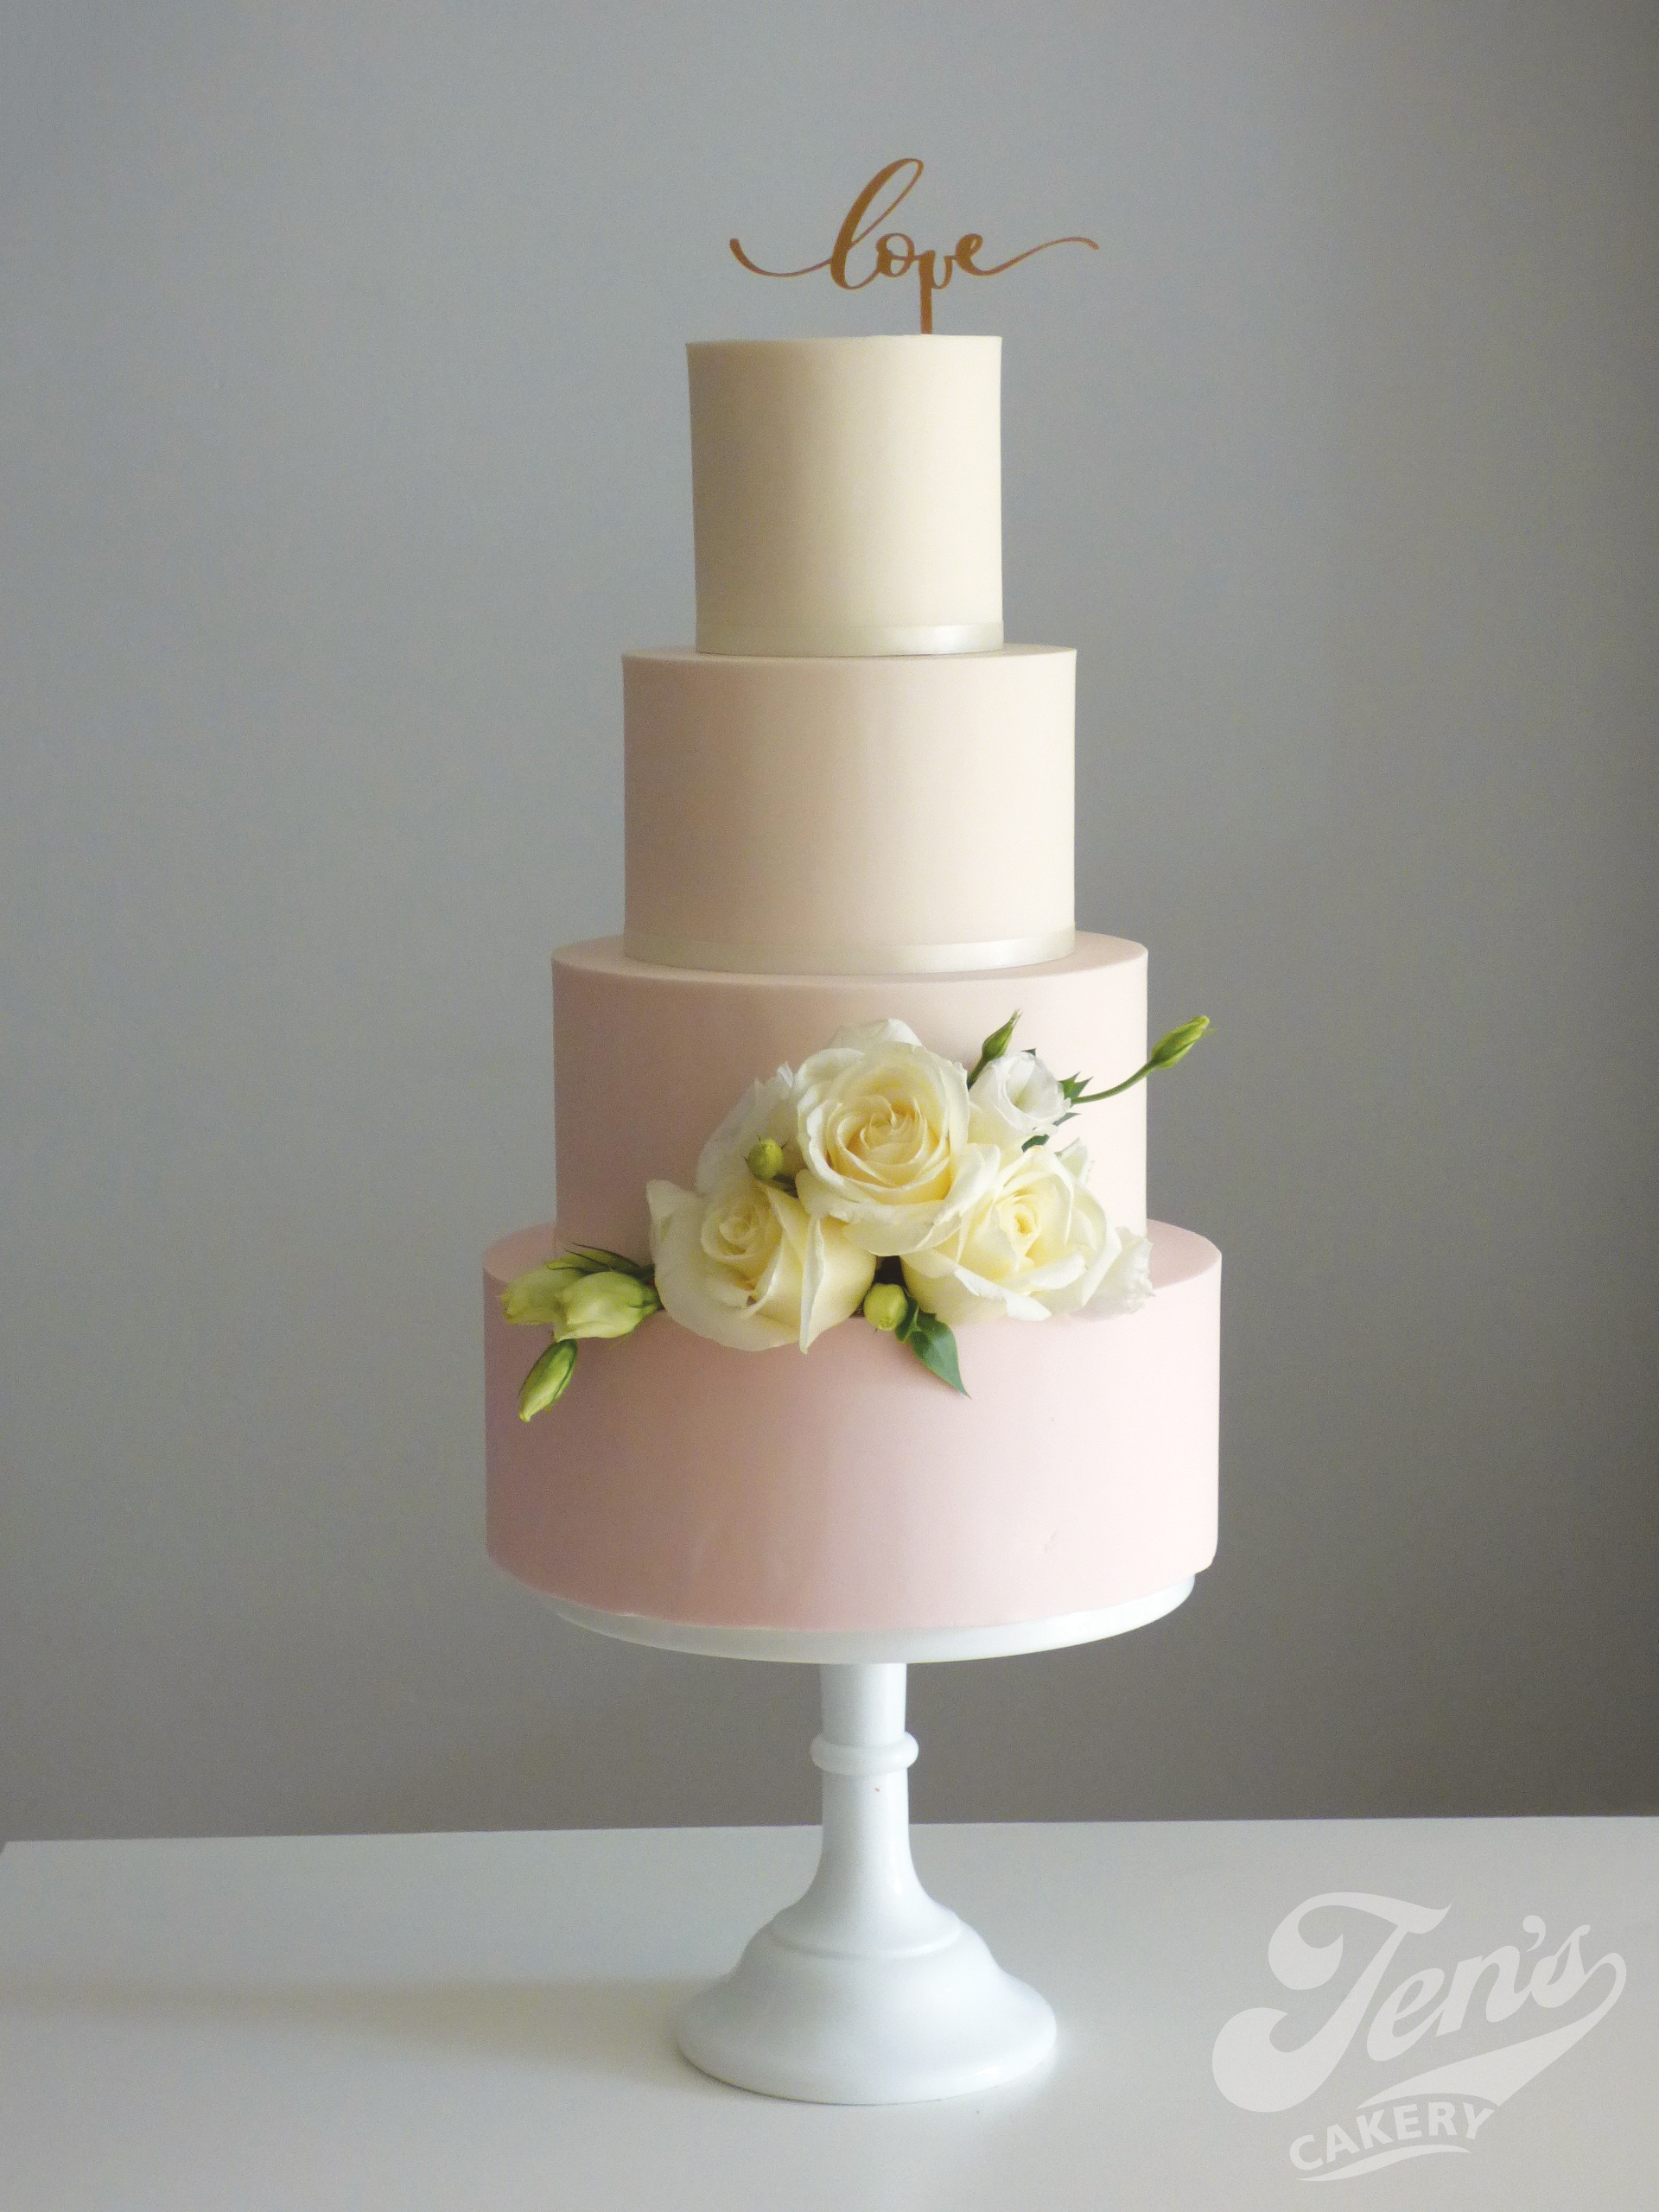 Beautifully simple, an ombre wedding cake in blush. Keeping it simple means it's easy on the budget too!